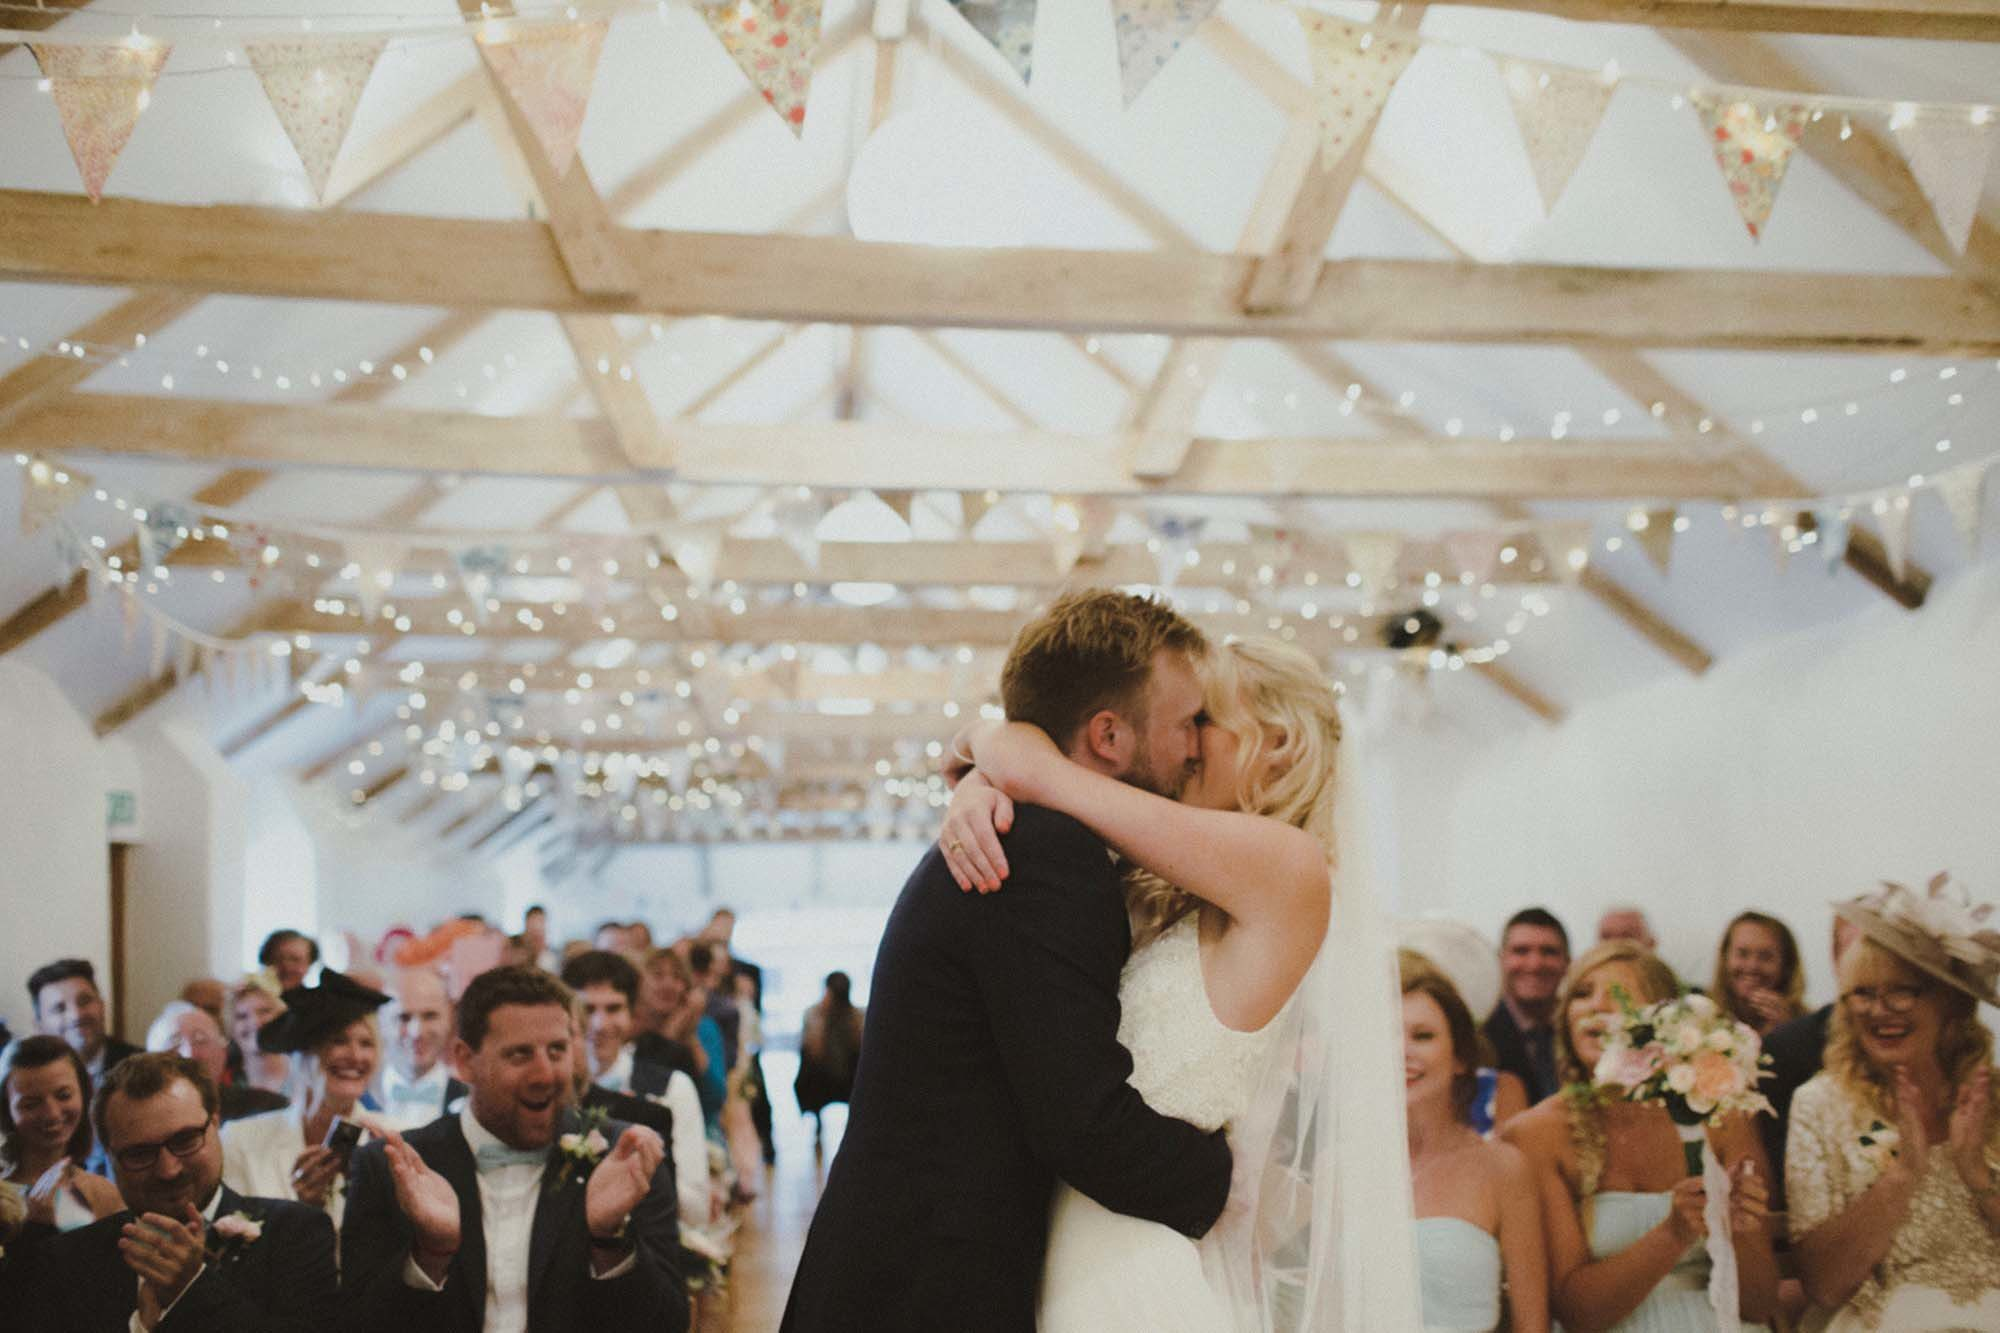 "This photo shows the ""you may kiss the bride"" moment of a ceremony held in the wedding barn. In the foreground you can see the bride and groom having a kiss. The guests are seated behind the couple in two columns of rows of chairs. The wedding barn has an oak floor and the walls and ceiling are painted white. There is a vaulted ceiling with a sets of old, oak, a-frame beams supporting the roof. You can see 10 sets of the beams in the image. There are fairy lights garlanding the beams and there is bunting on the beams too. the guests are seated and are looking at the bride and groom and clapping. The groom is wearing a dark jacket and has light brown hair and a beard. The bride is wearing a lace, sleeveless dress and has blond hair worn loose. She is wearing a veil."